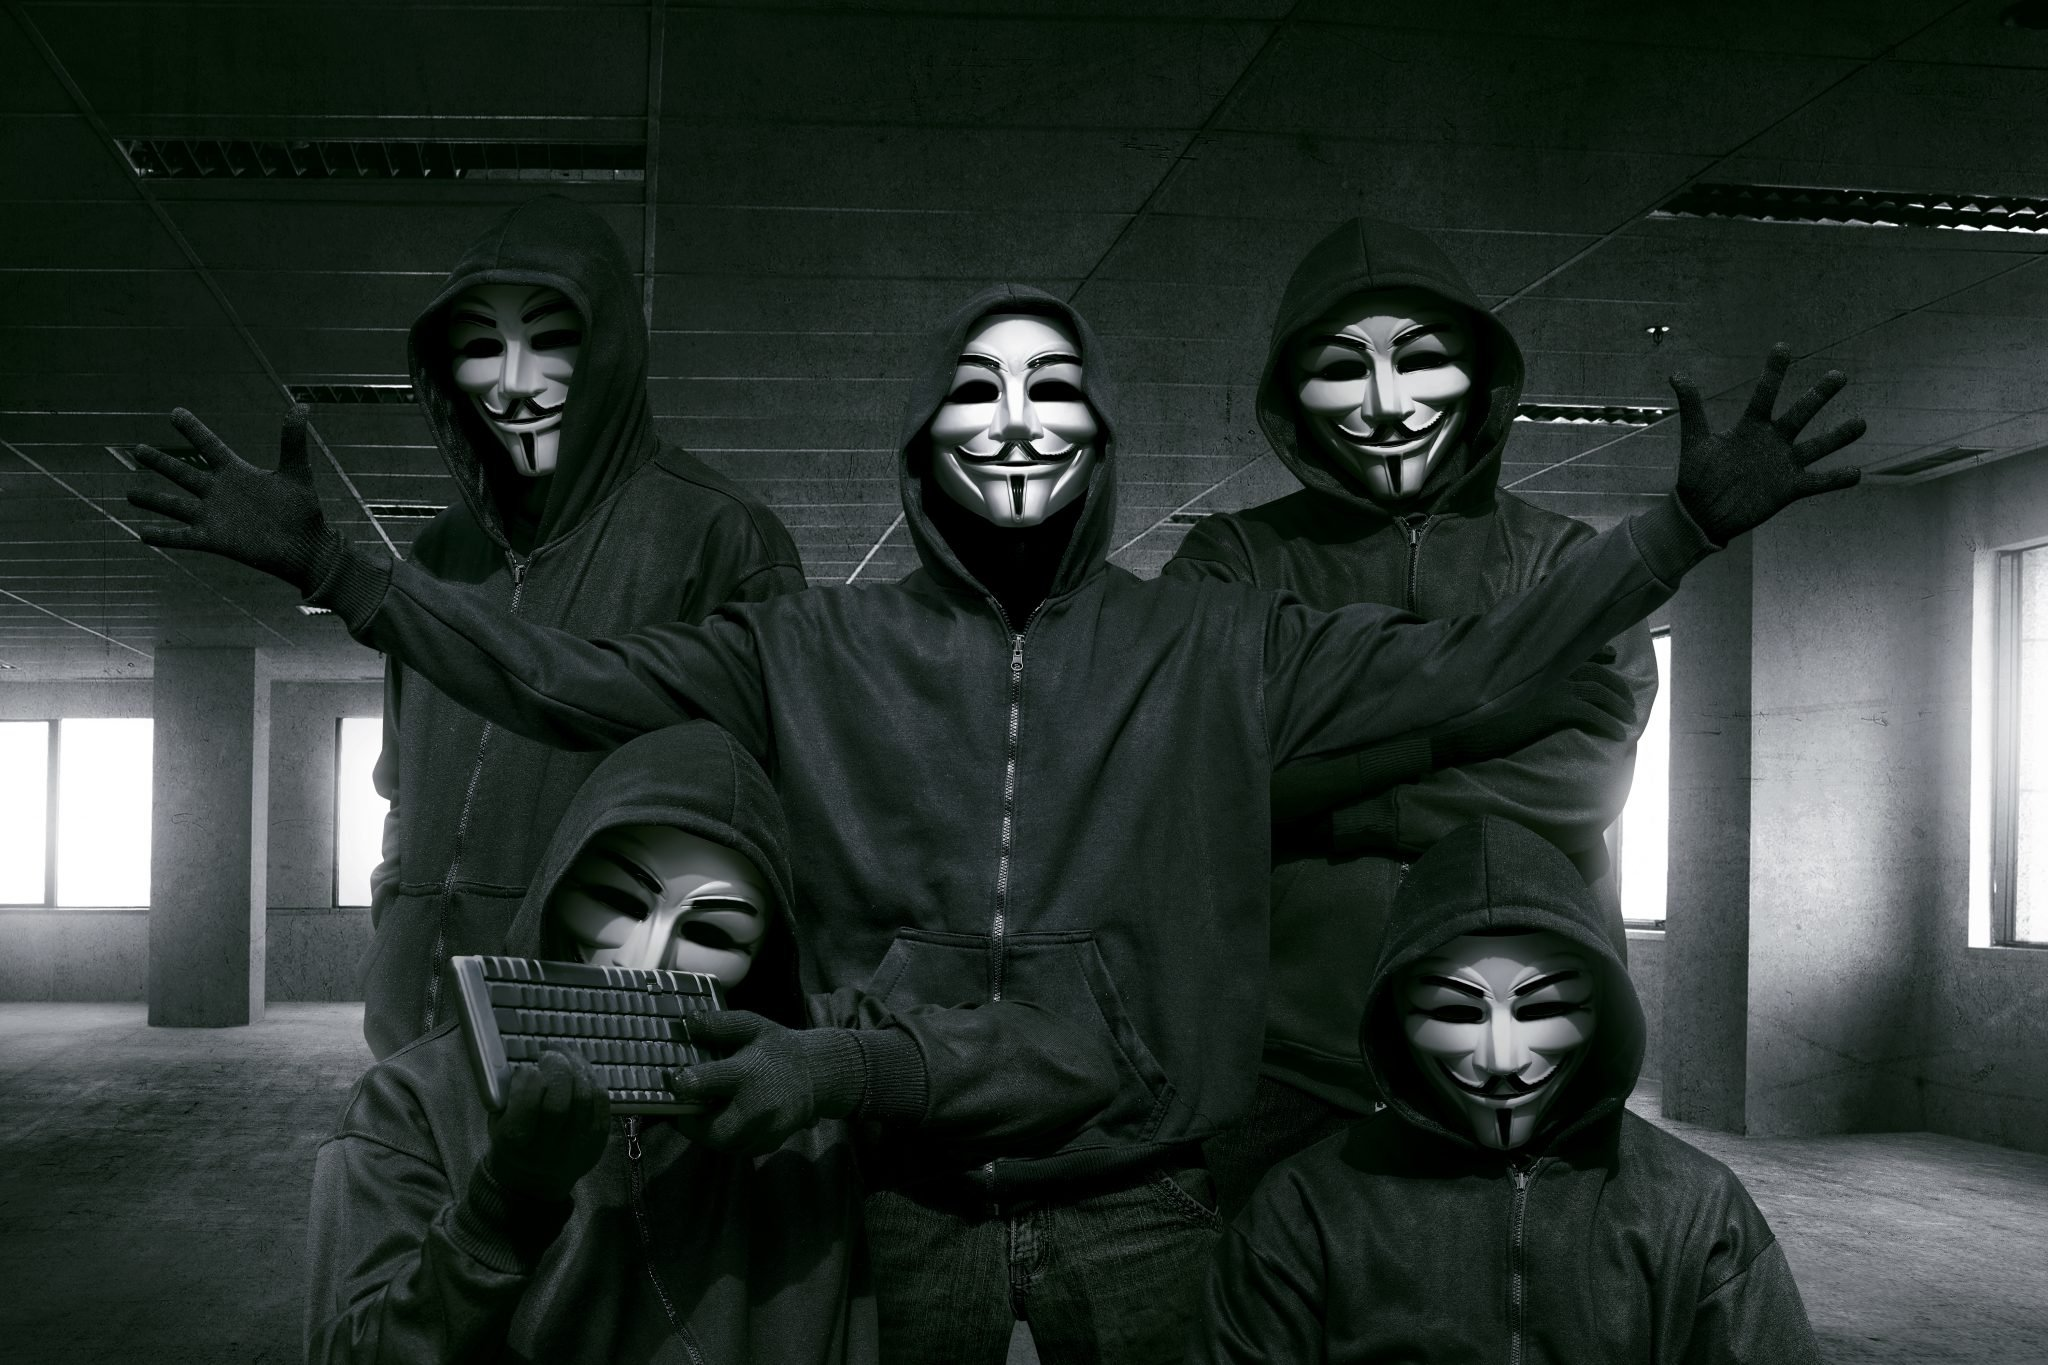 hackers in masks with keyboard